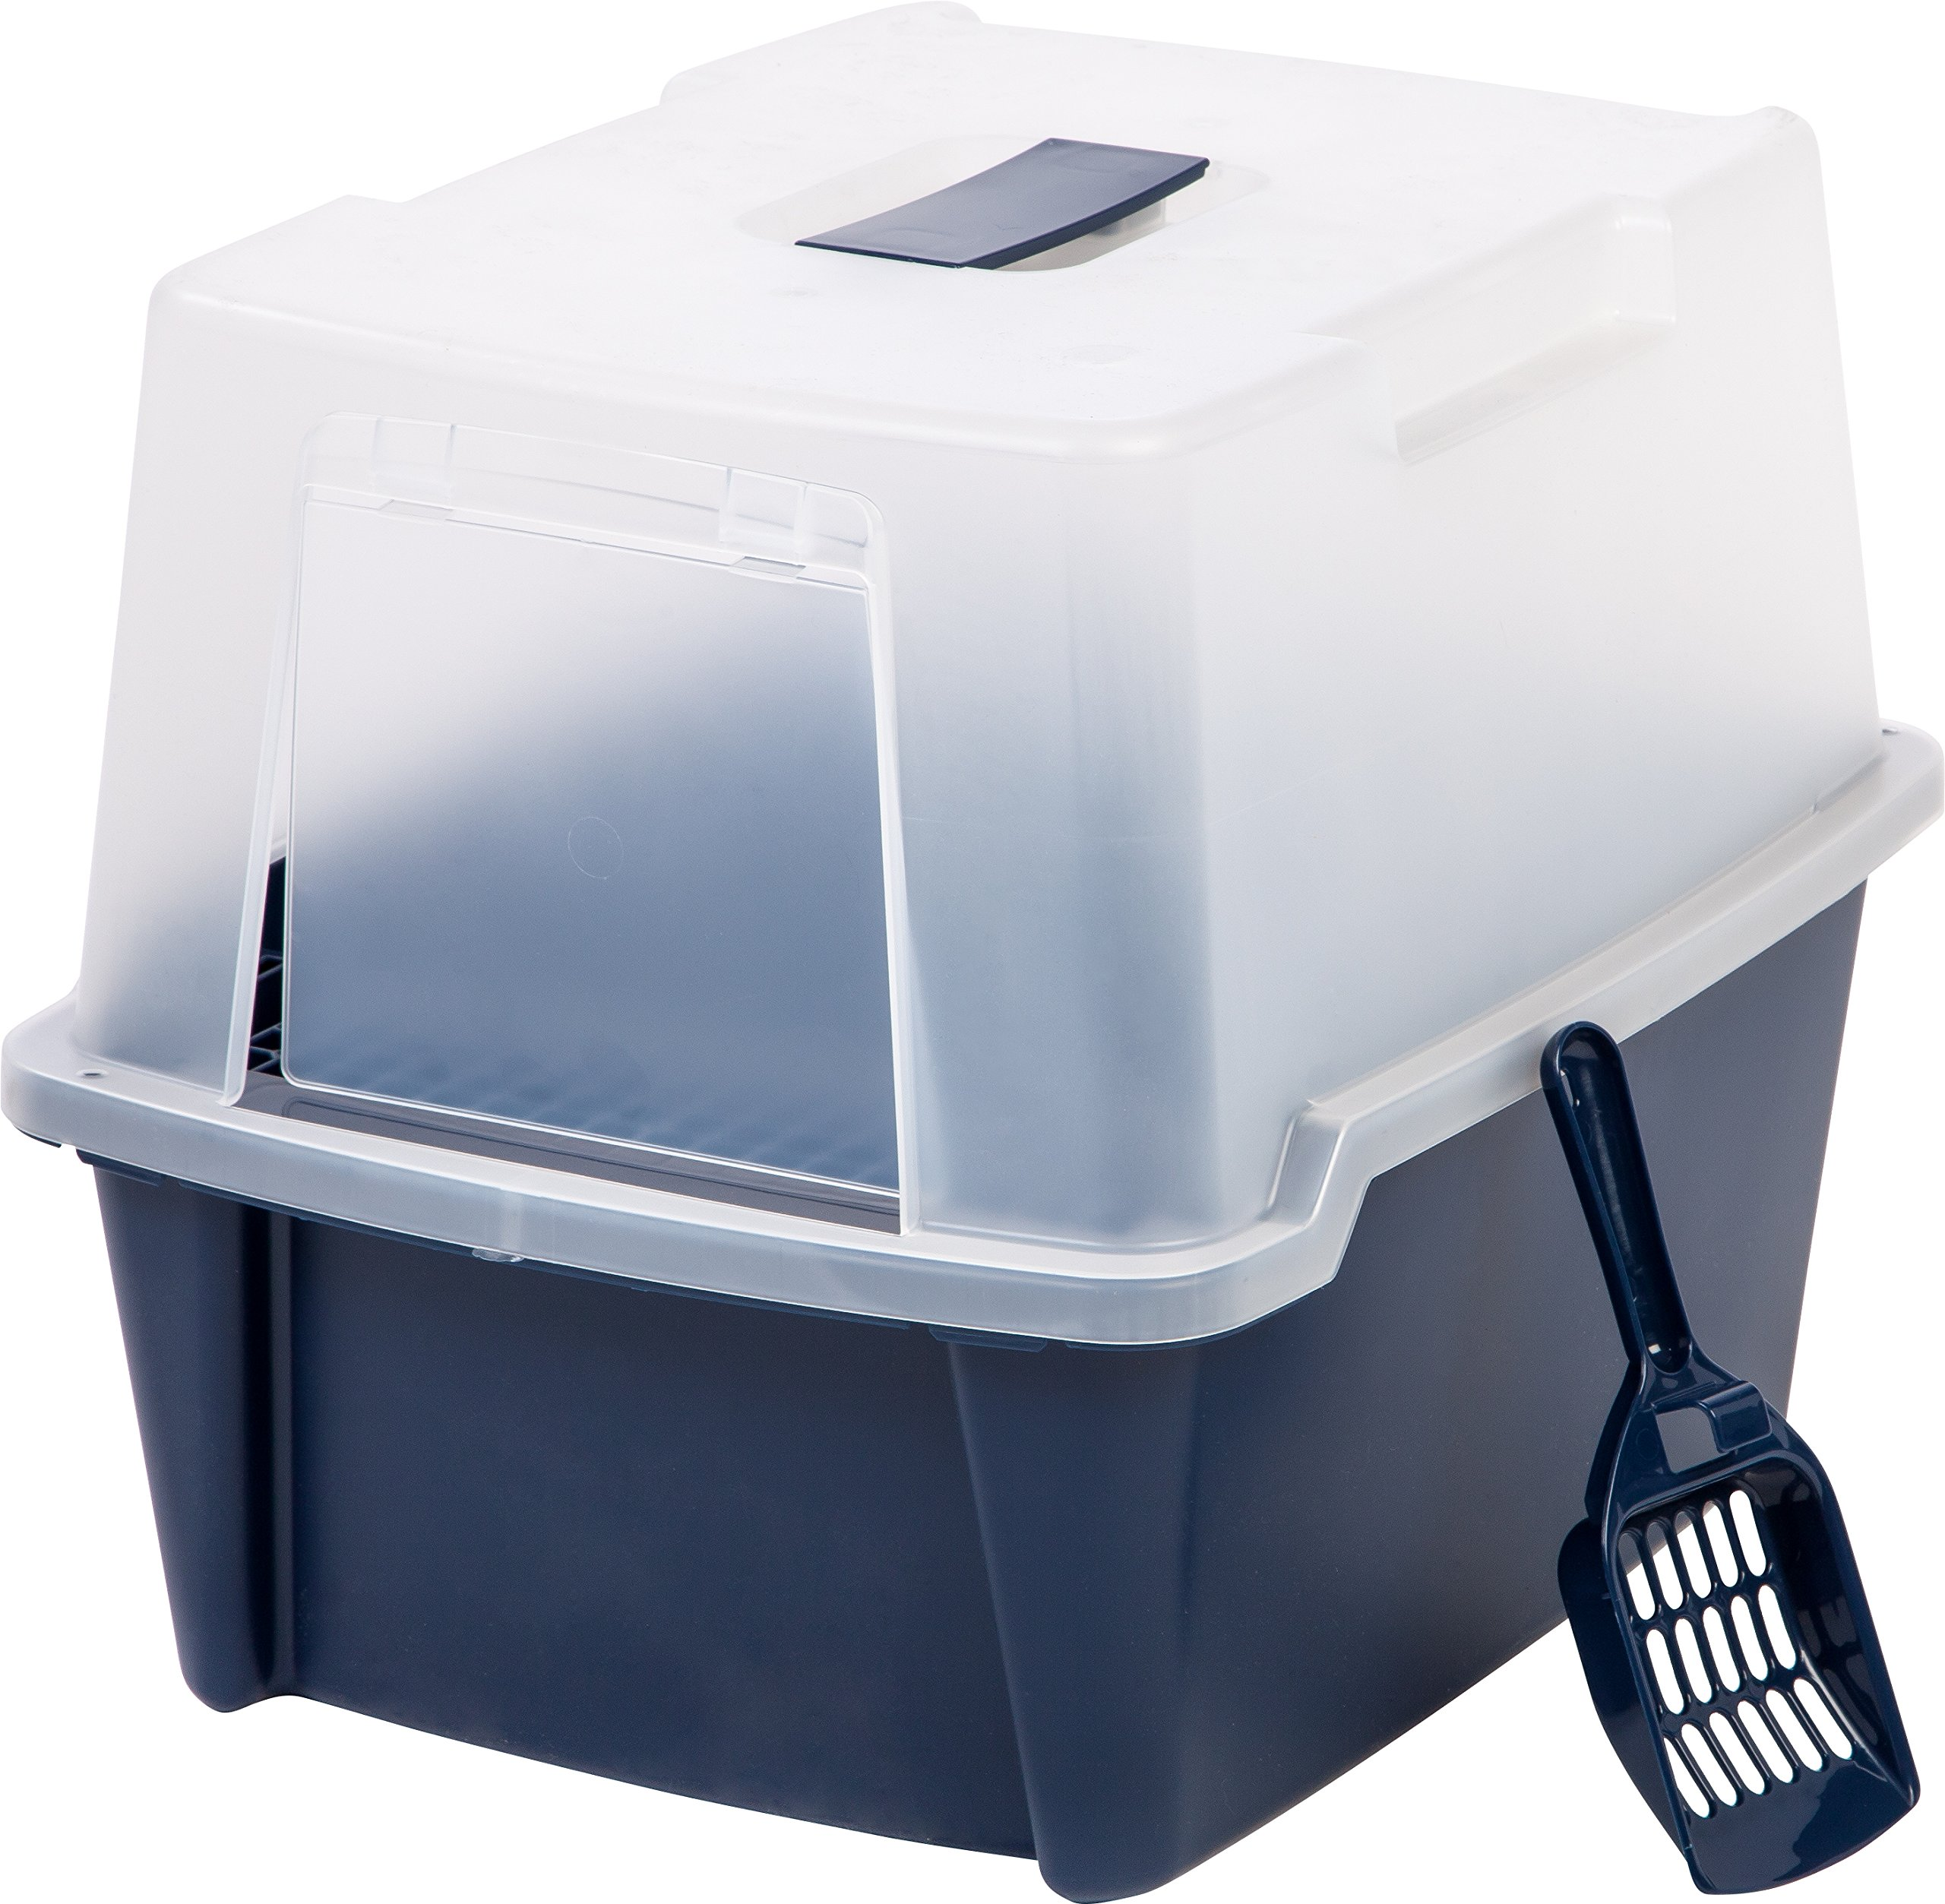 IRIS Large Hooded Litter Box with Scoop and Grate, Blue by IRIS USA, Inc.